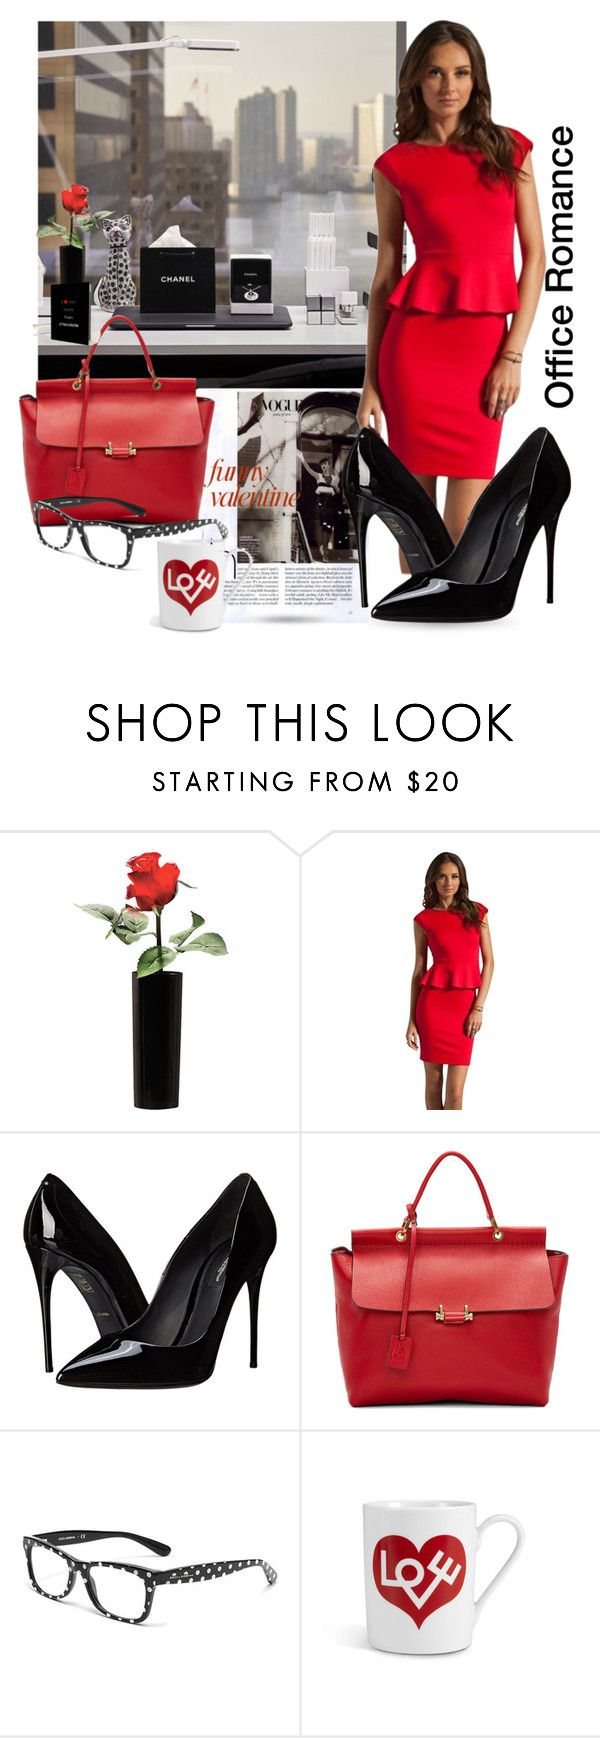 """""""Office Romance"""" by queenofsienna ❤ liked on Polyvore featuring Alice + Olivia, Dolce&Gabbana, Lanvin, Vitra, women's clothing, women, female, woman, misses and juniors"""